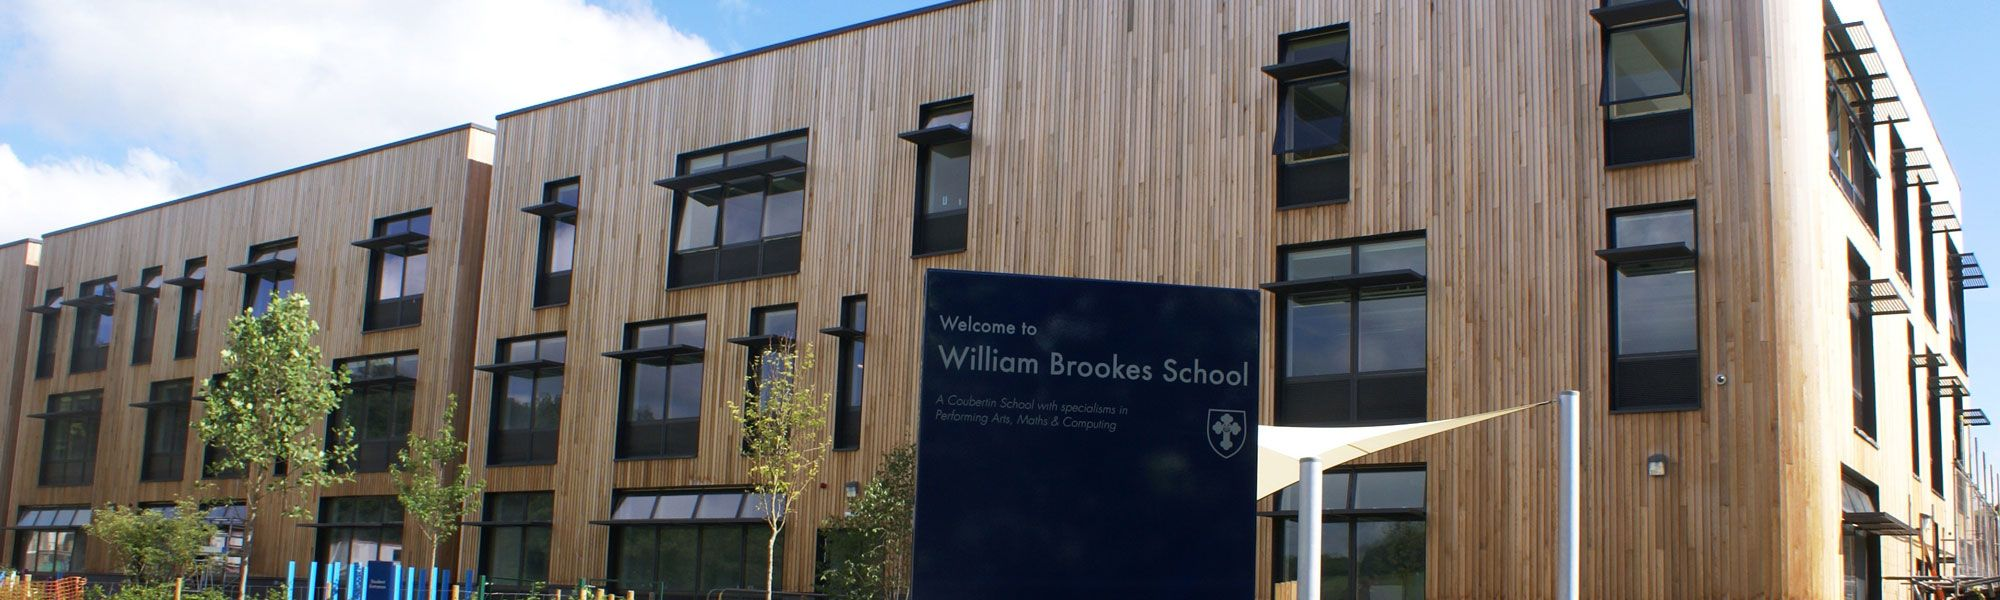 Students and facilities at William Brookes School in Much Wenlock, Shropshire